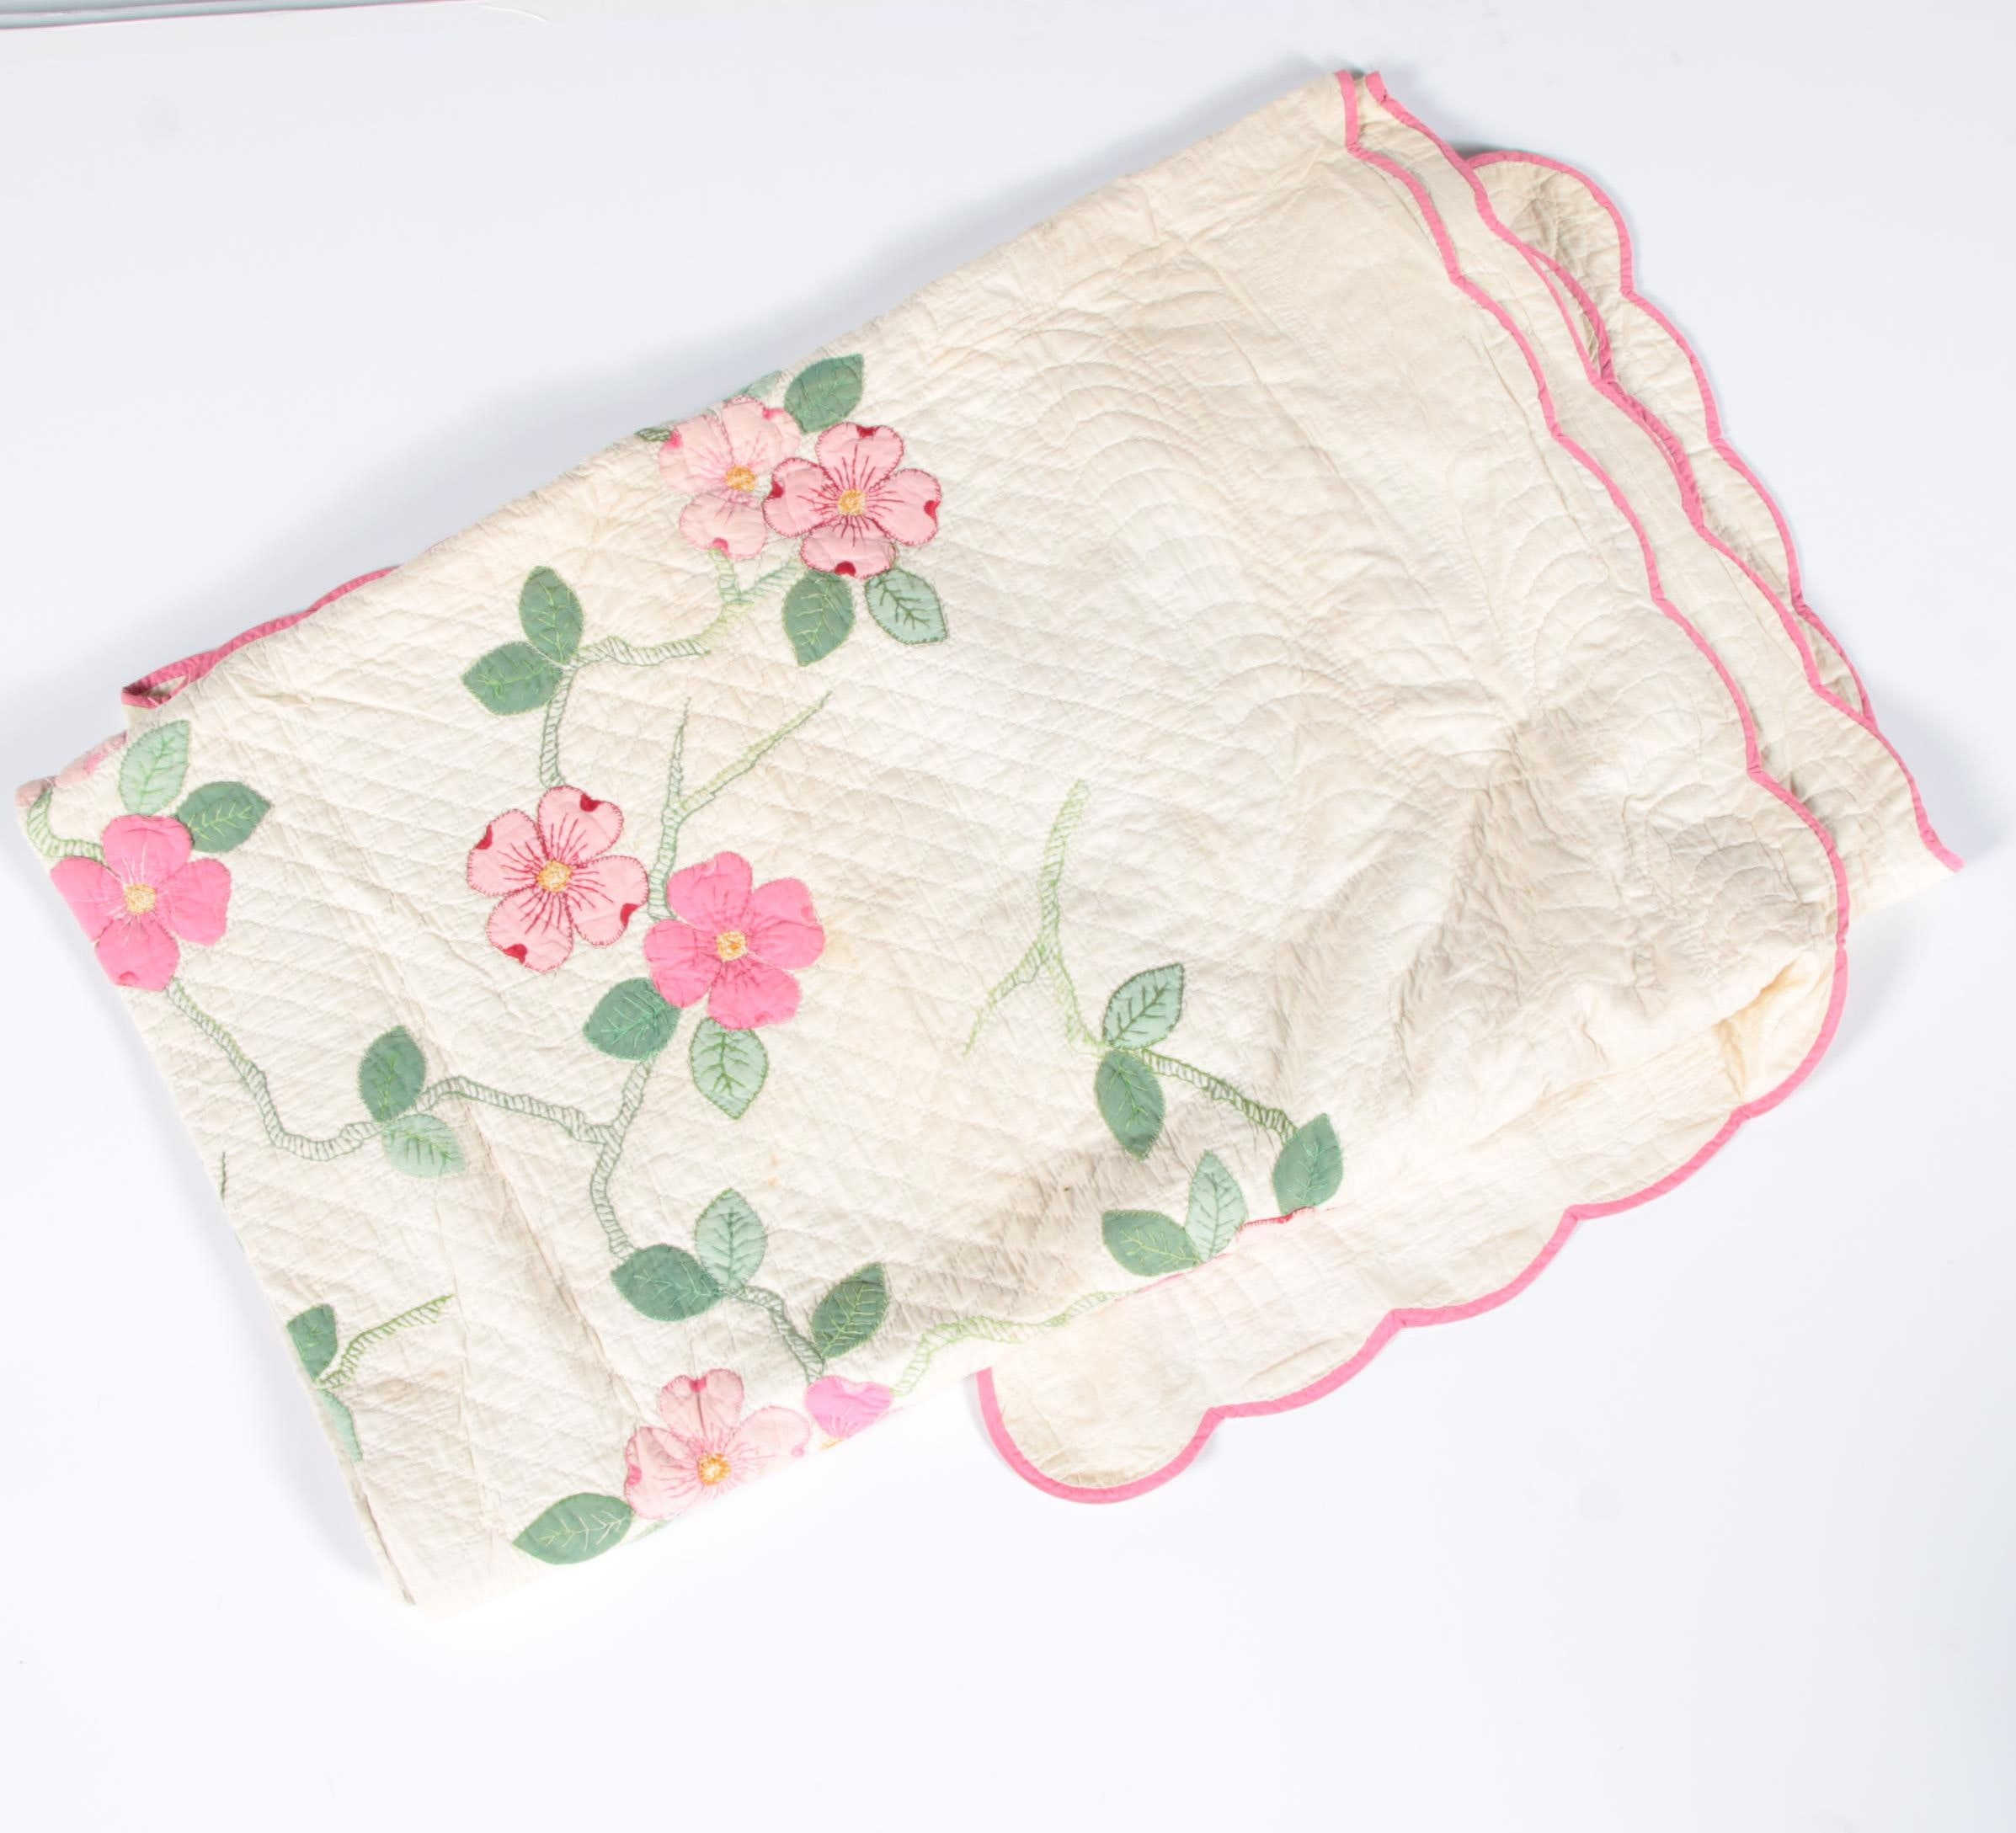 Hand Stitched Floral Appliqué and Embroidered Coverlet